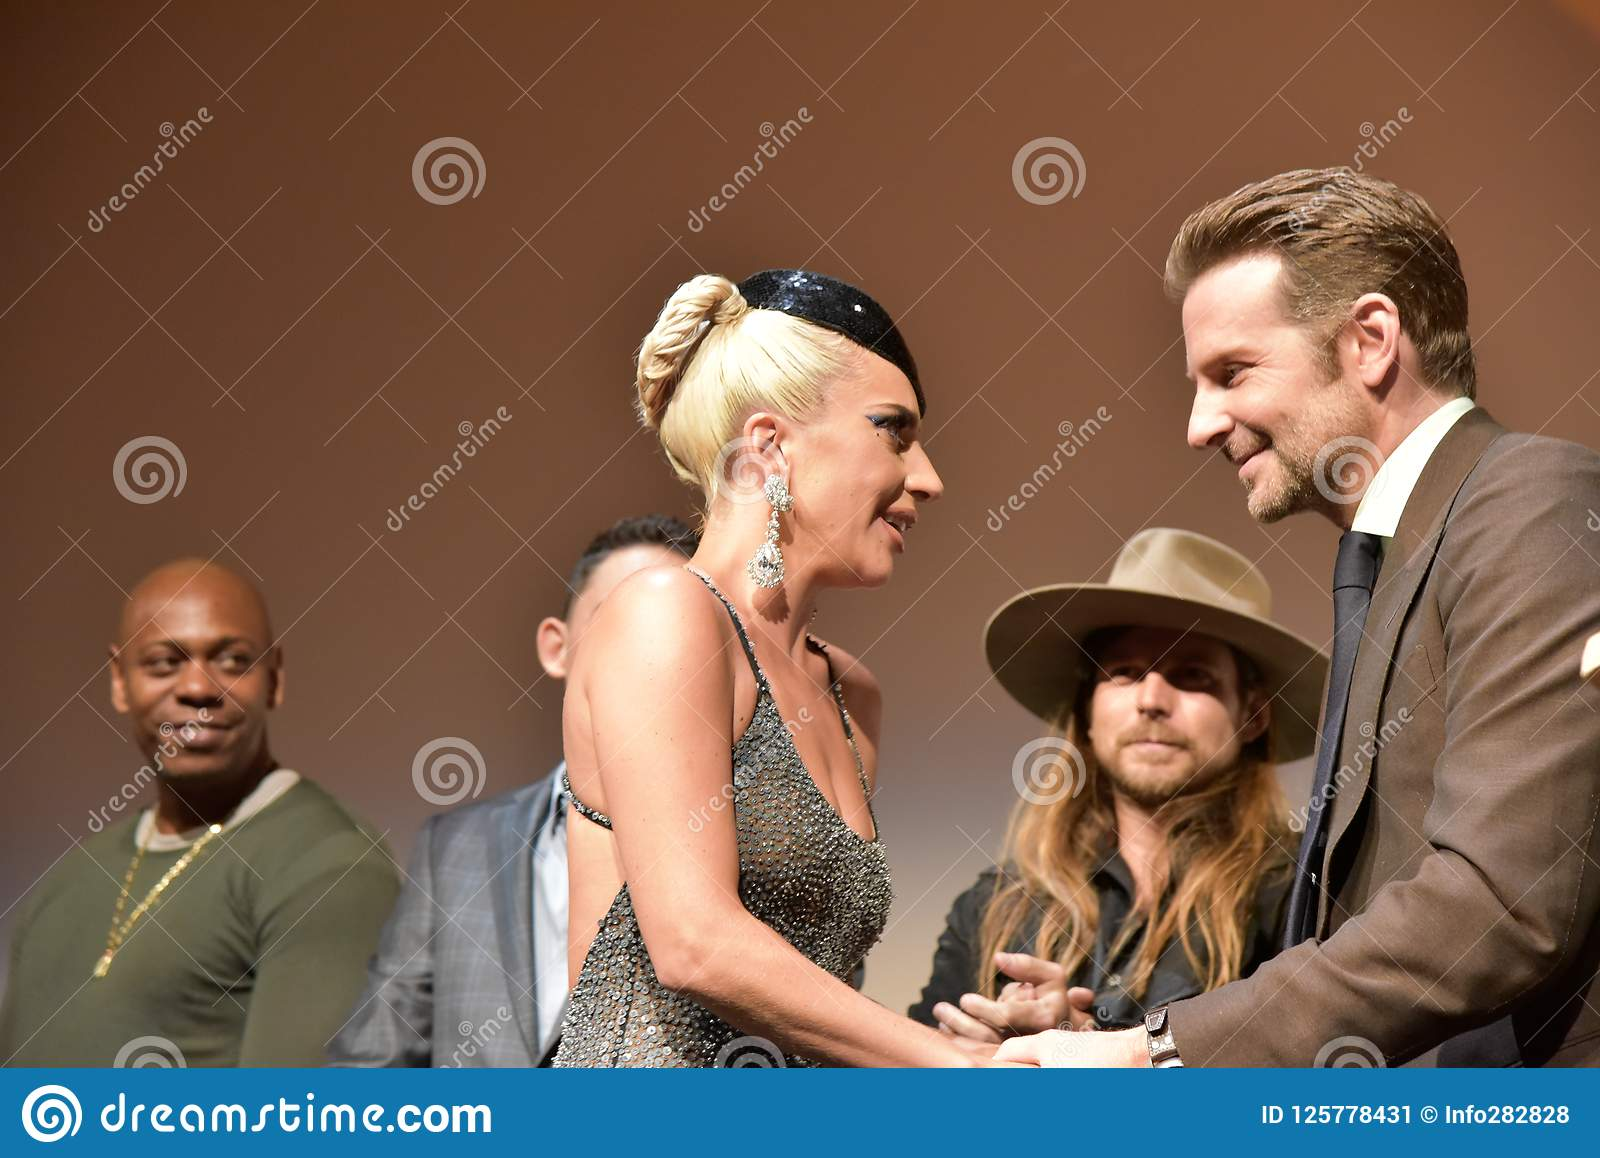 Bradley Cooper And Lady Gaga At Premiere Of A Star Is Born